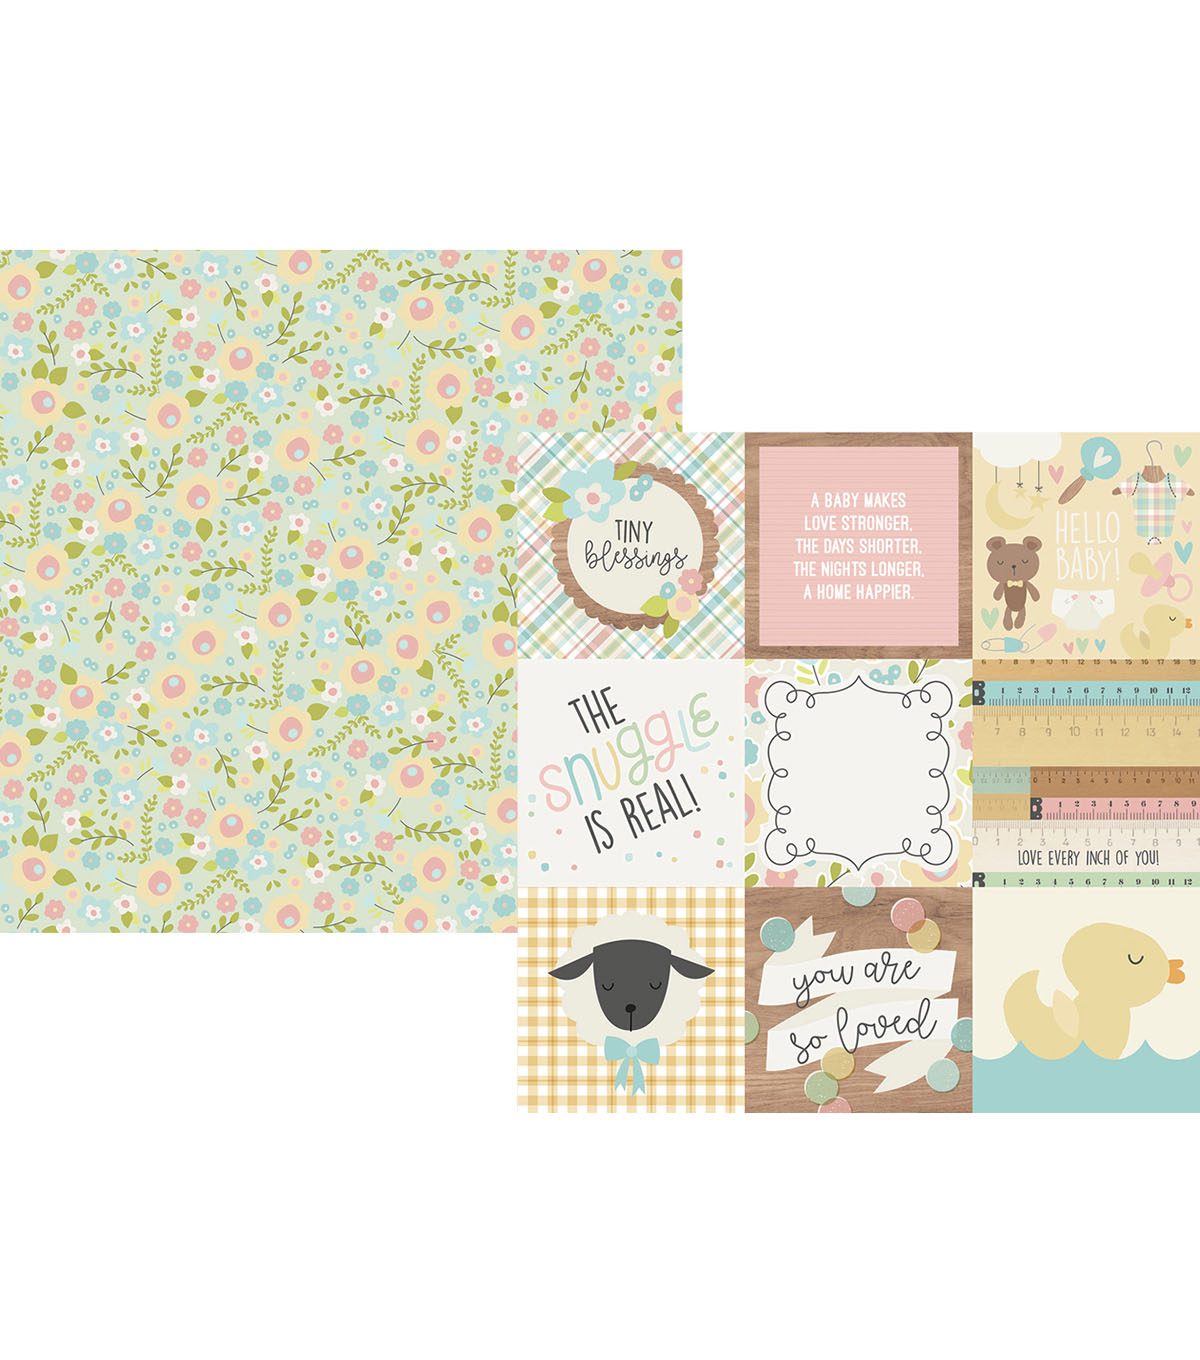 Simple Stories Oh Baby! 25 pk 12\u0027\u0027x12\u0027\u0027 Cardstock with 4\u0027\u0027x4\u0027\u0027 Elements